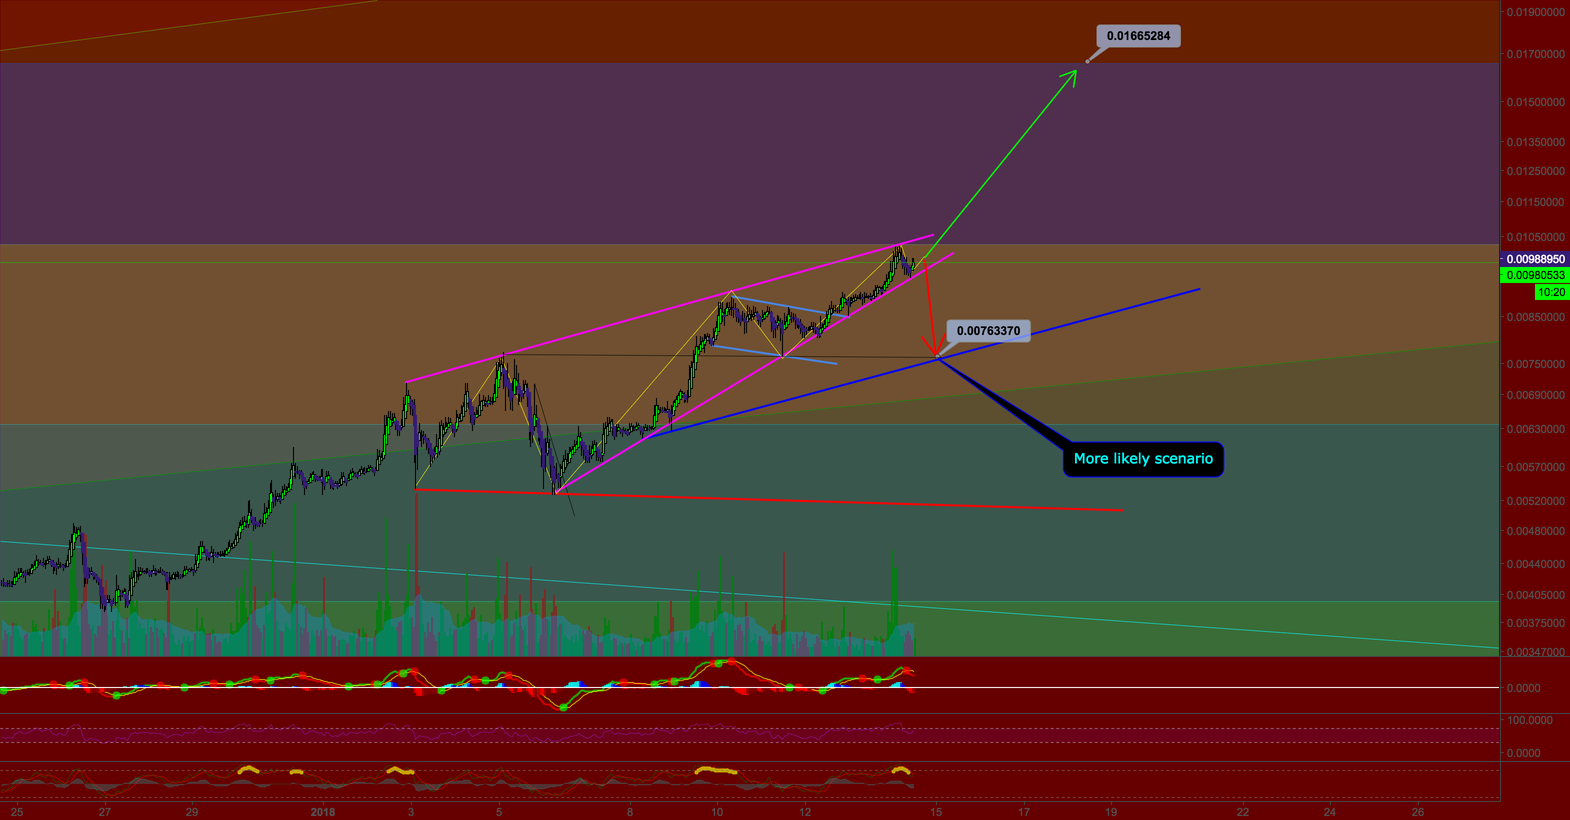 NEO Possible Scenarios - More Likely To Dump For The Moment